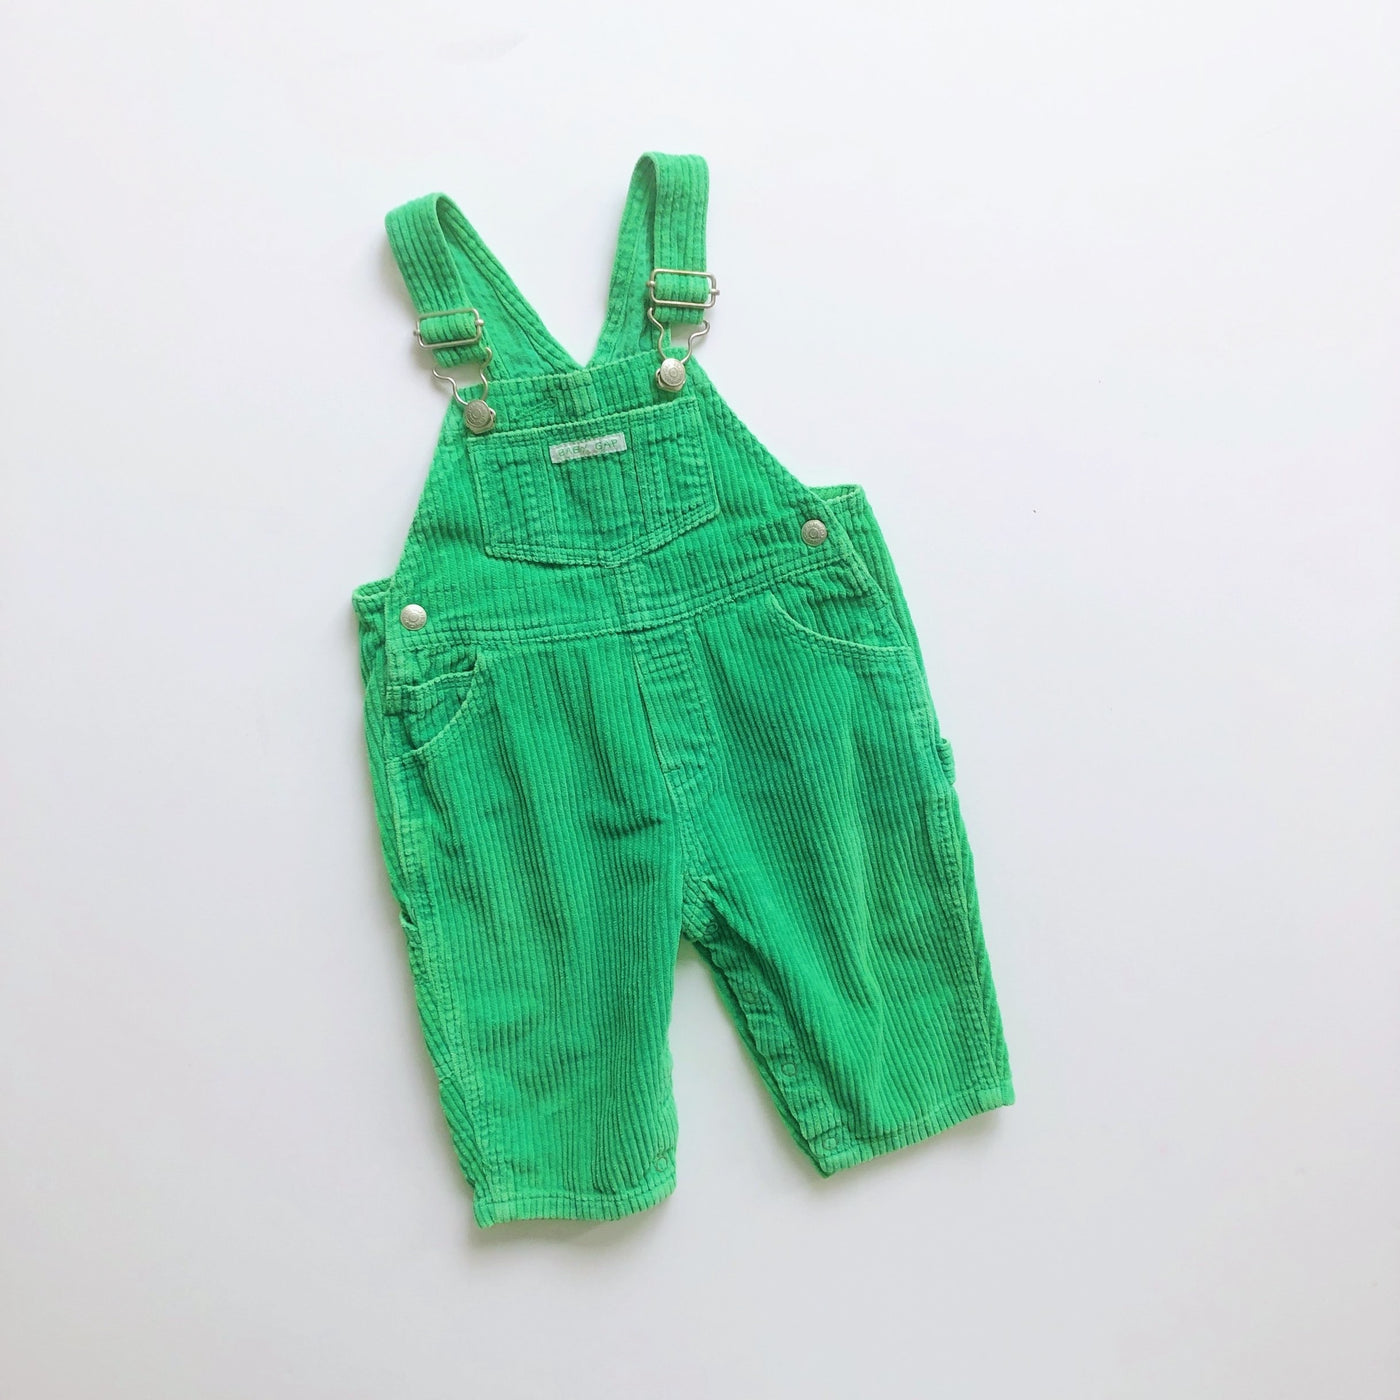 Baby Gap Bright Green Corduroy Overalls / Size 6-12M